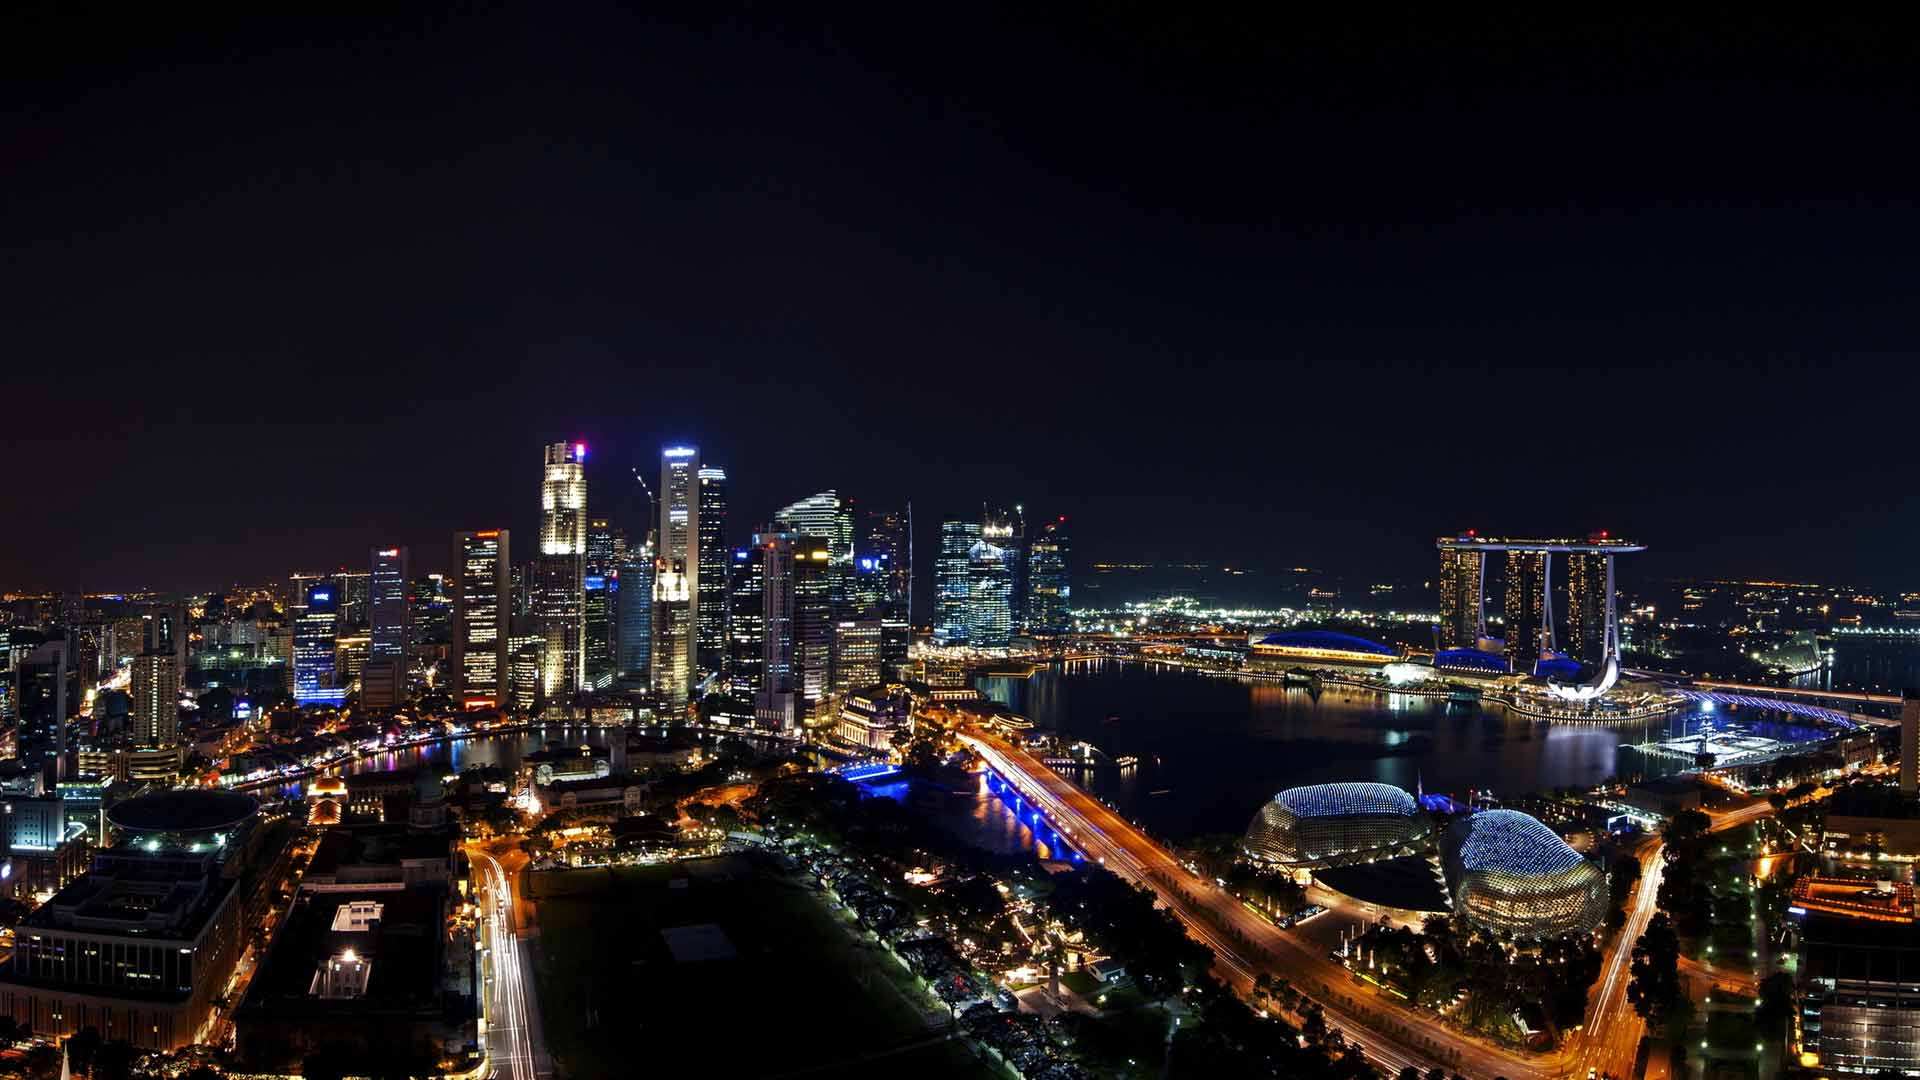 singapore city catalogue Singapore holidays find great travel deals to singapore: including vacation packages, hotels and tours enjoy your trip with better discounts.